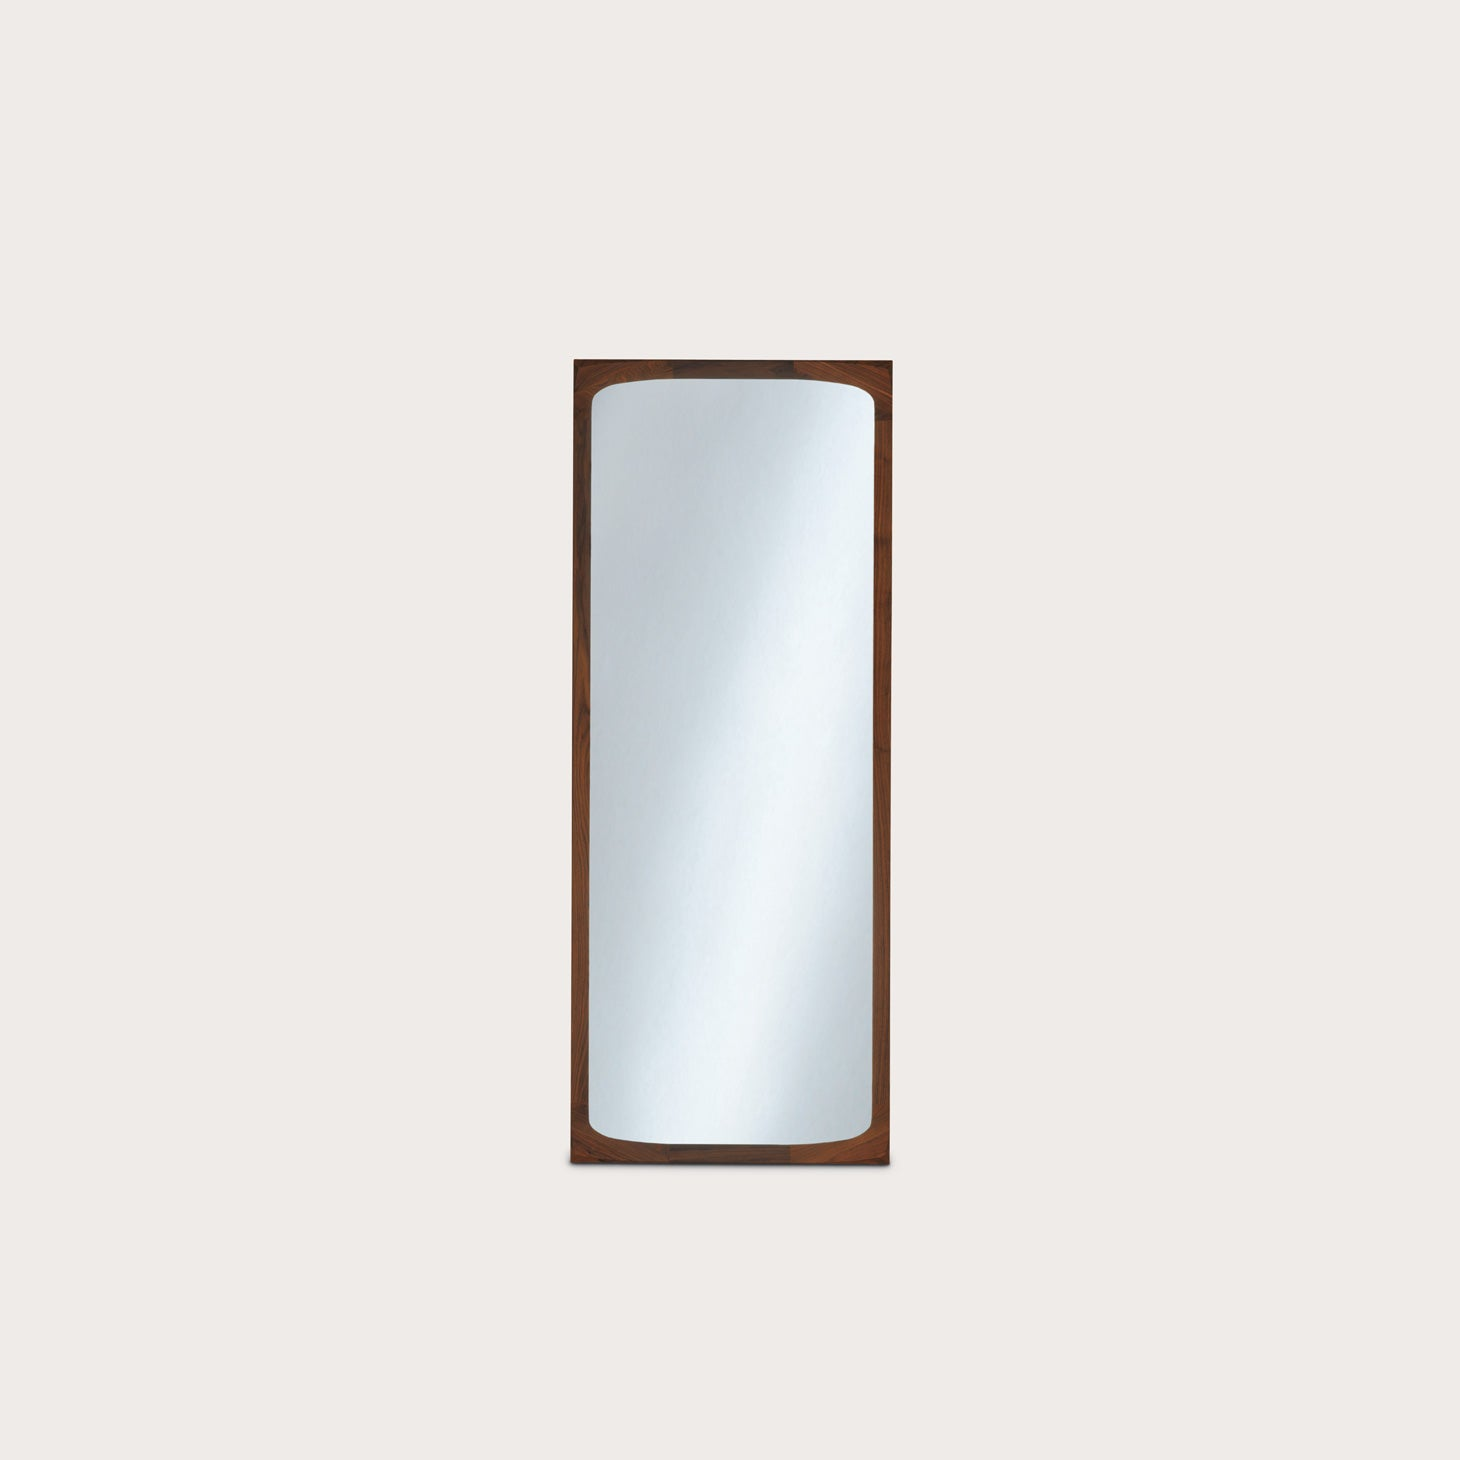 Bonny Mirror Accessories Formstelle Designer Furniture Sku: 006-100-10016